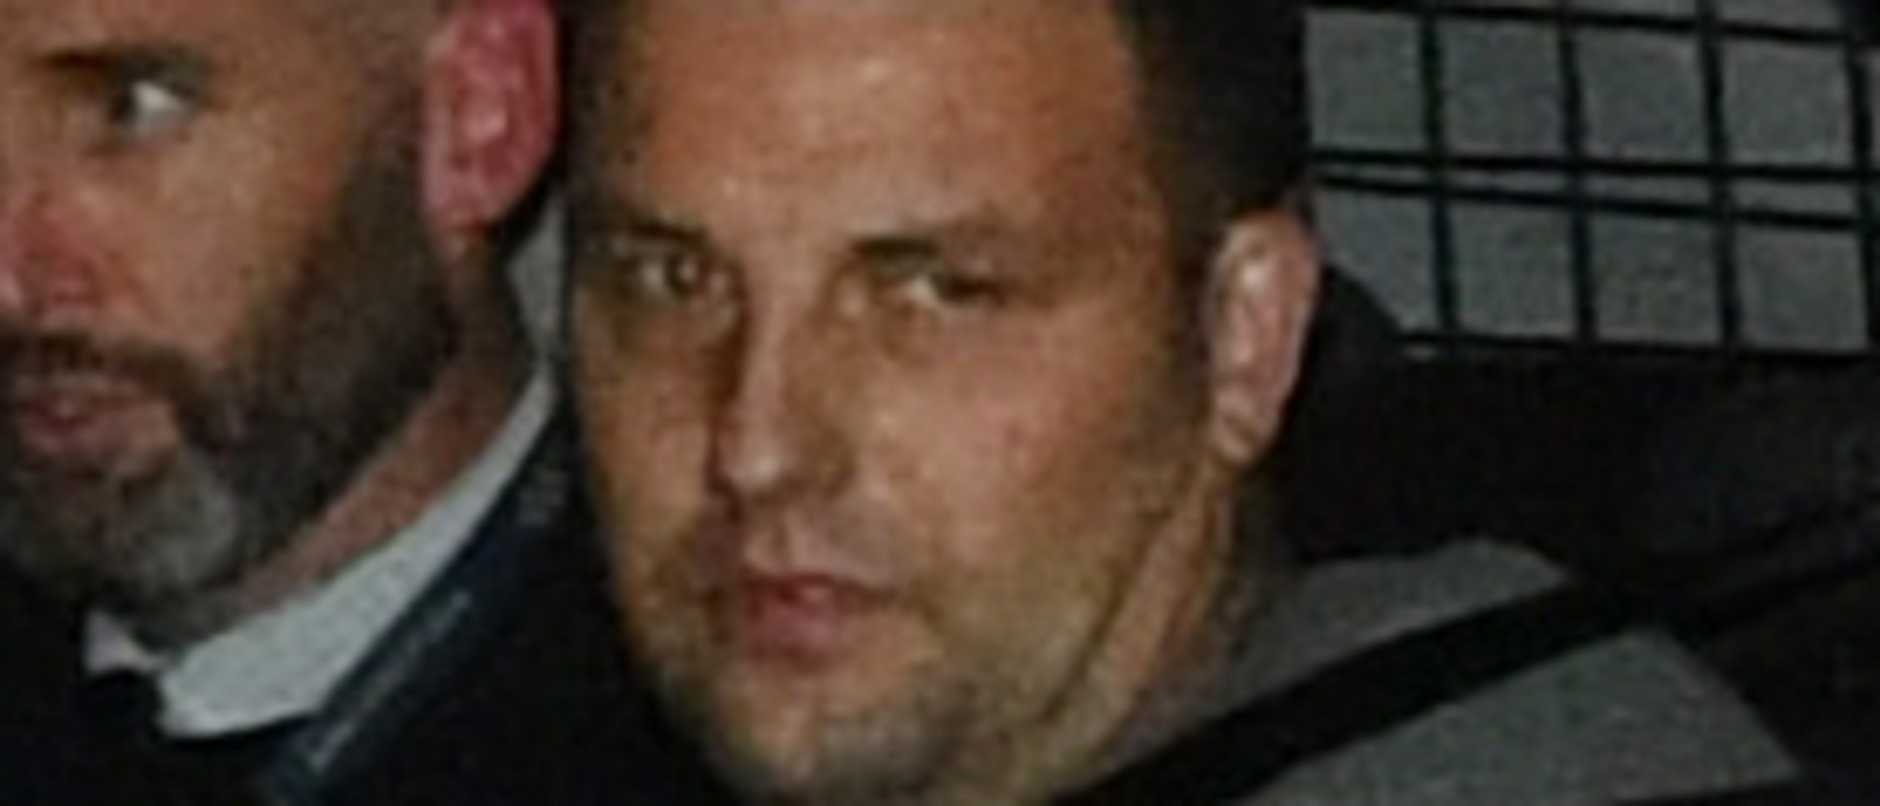 A man has been charged over the death of Zlatko Sikorsky who died in prison last month while serving time for killing girlfriend Larissa Beilby.